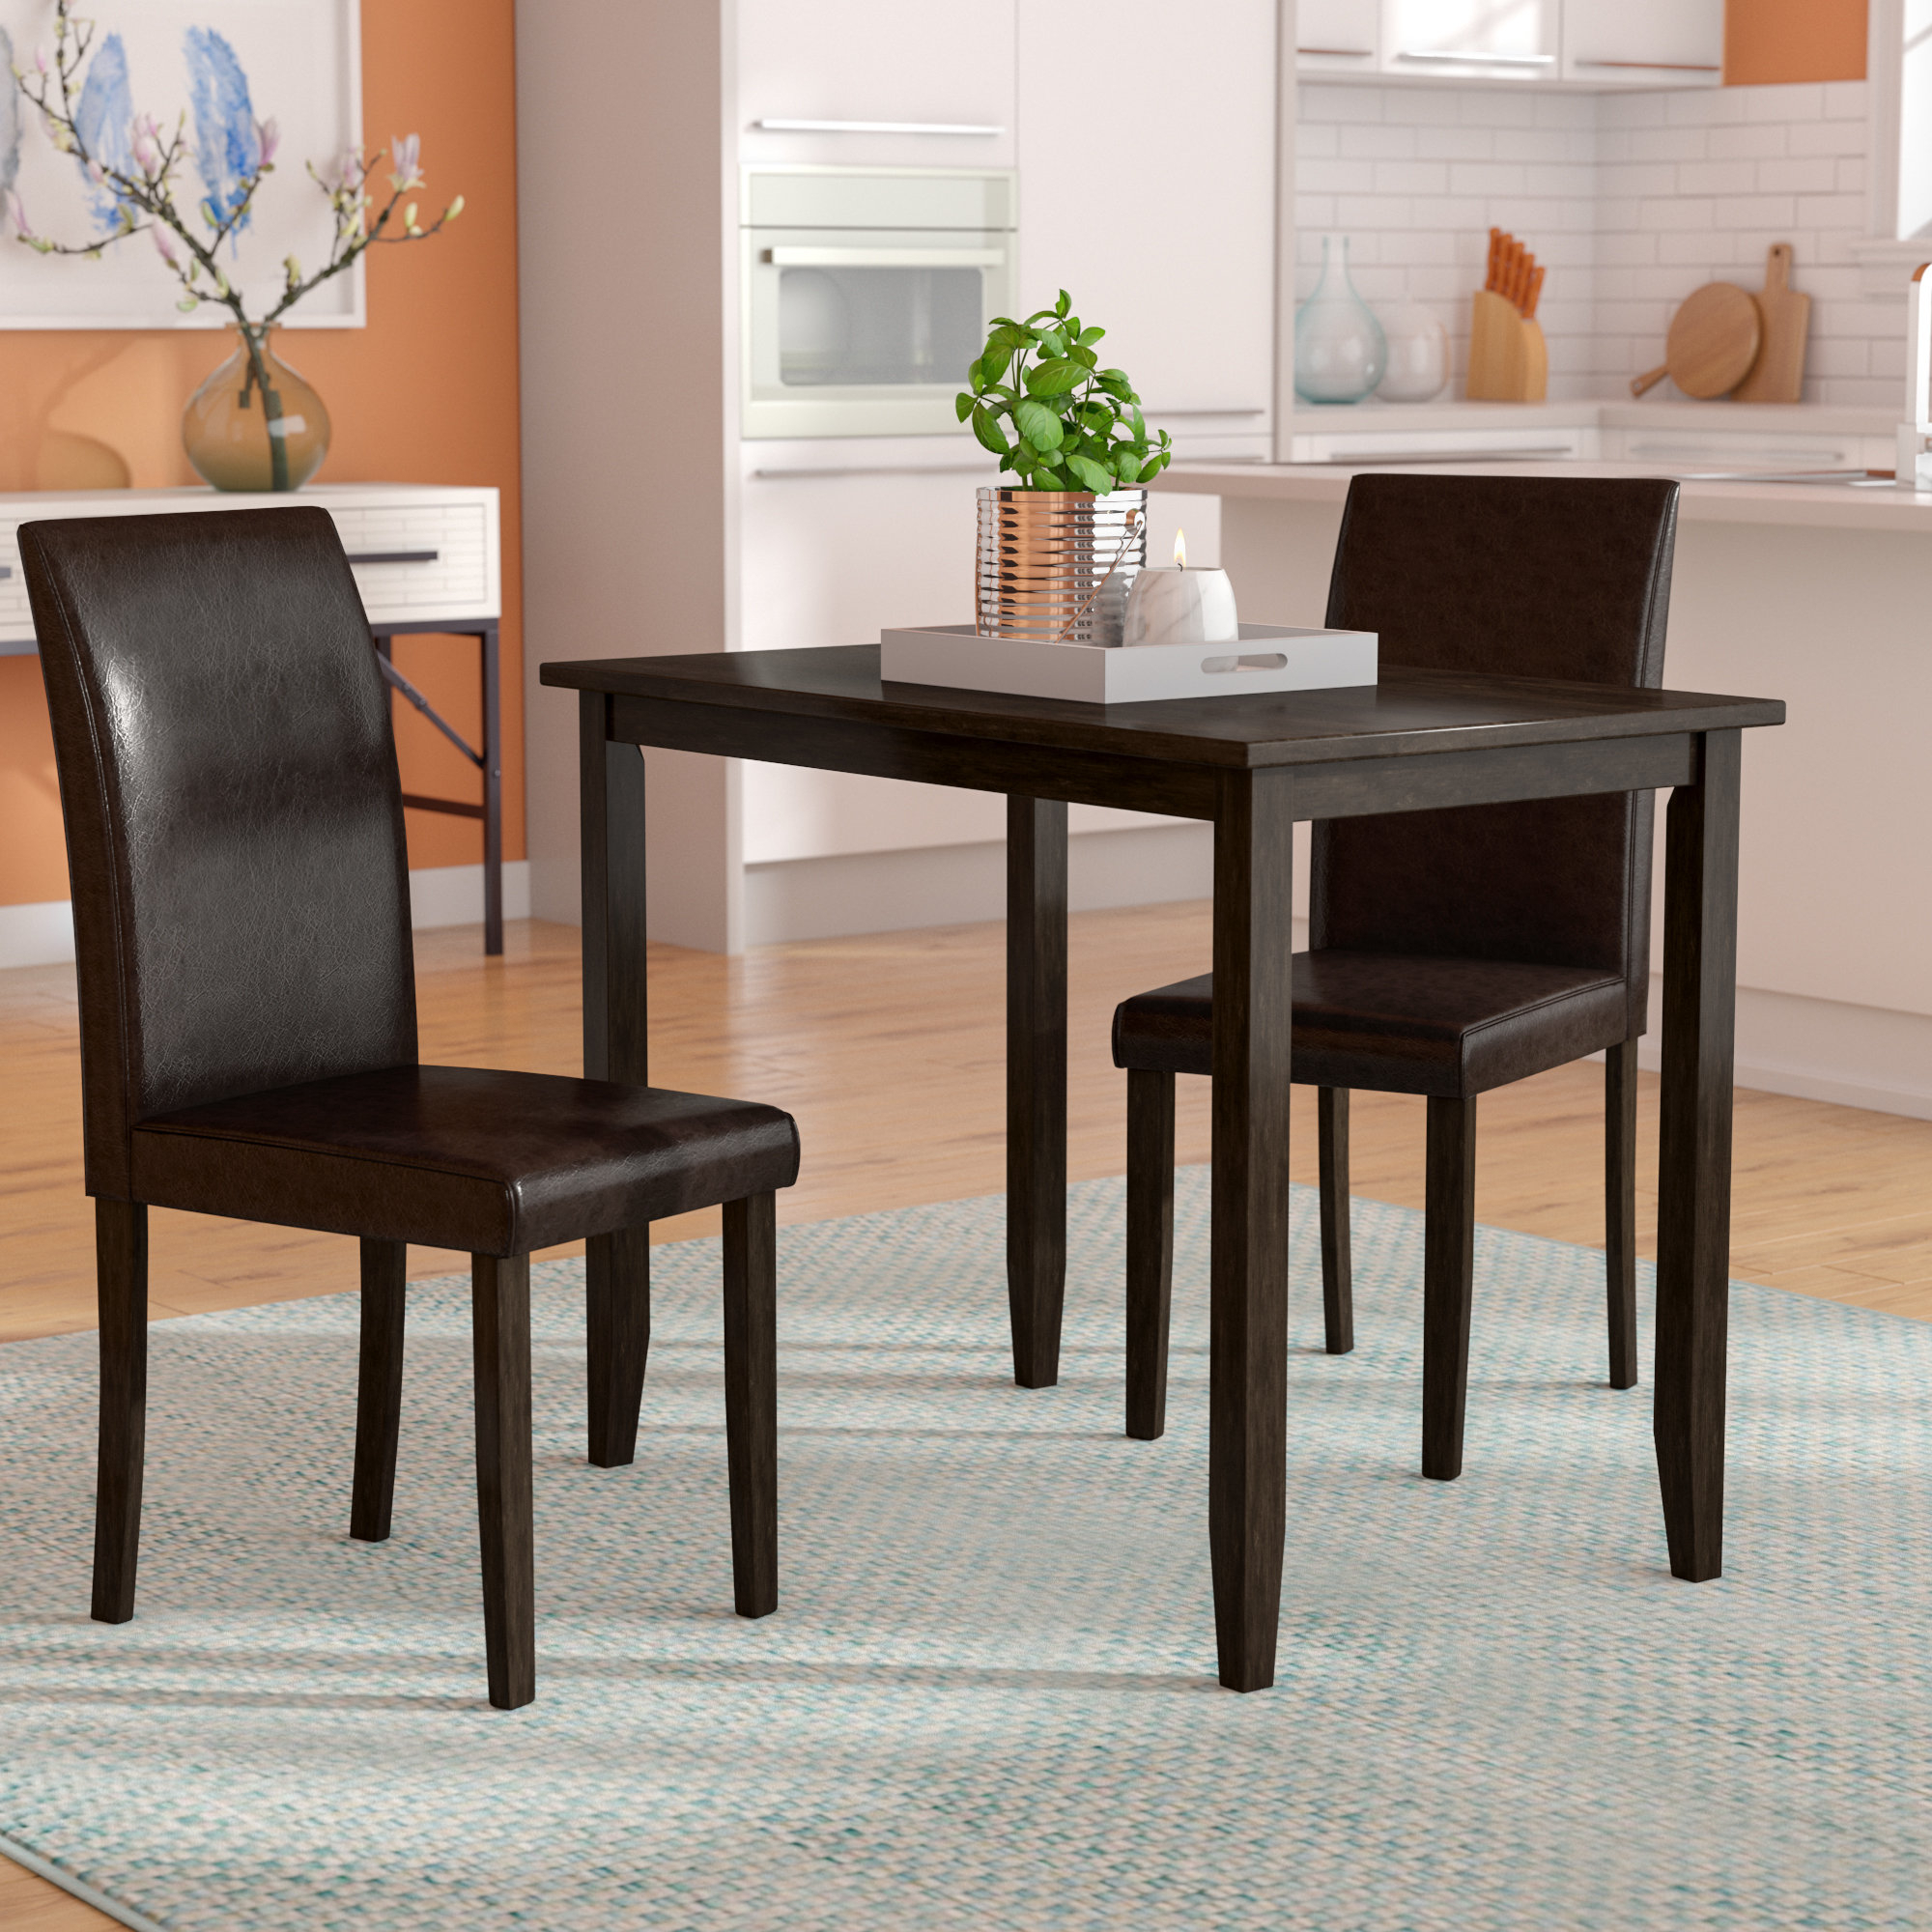 Featured Image of Baillie 3 Piece Dining Sets